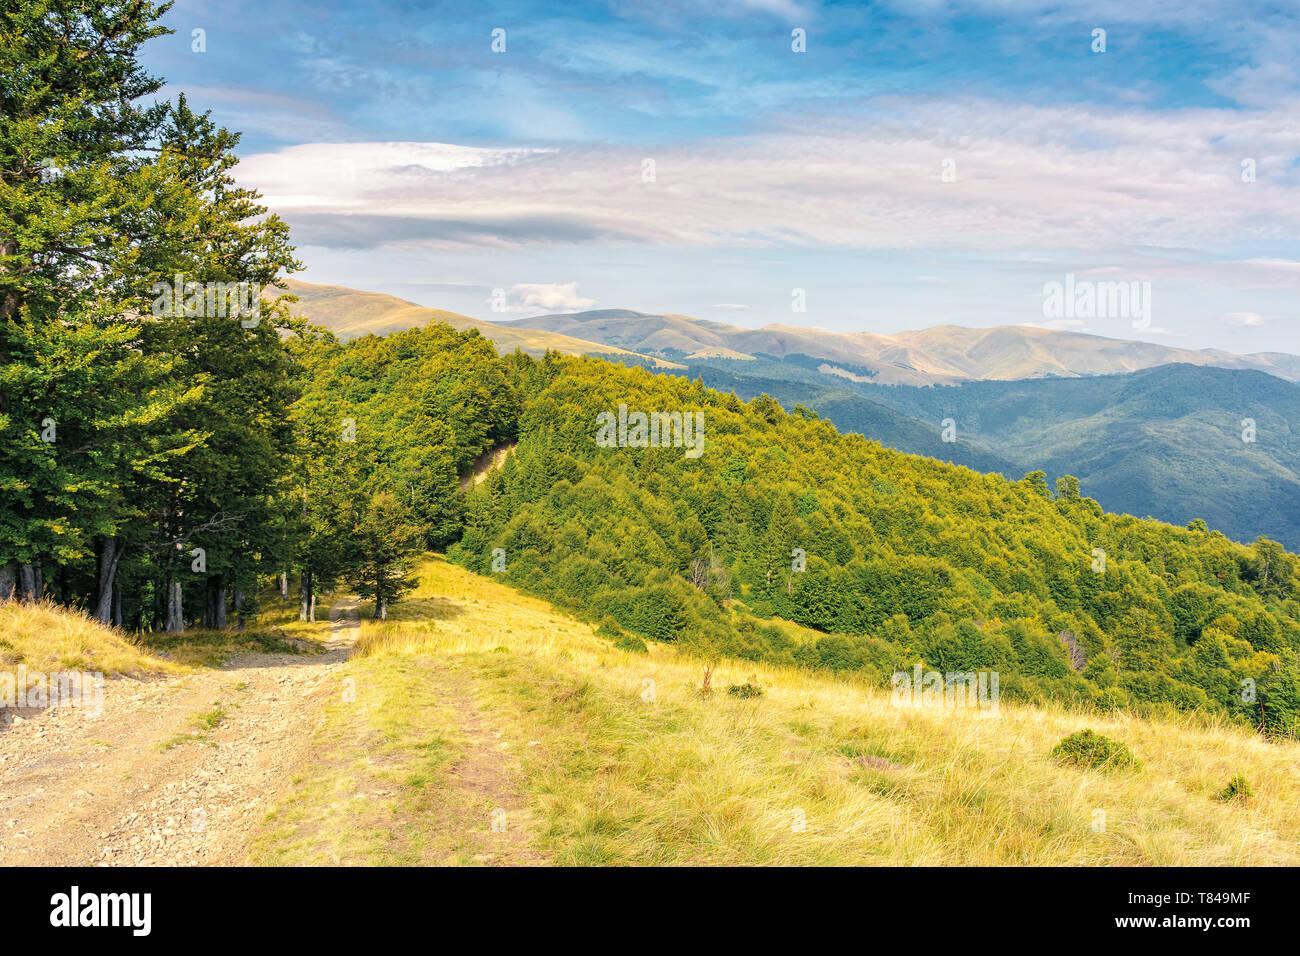 old country road through hills in to the primeval beech forest. nature scenery with trees along the way. sunny late summer landscape with clouds on a  - Stock Image